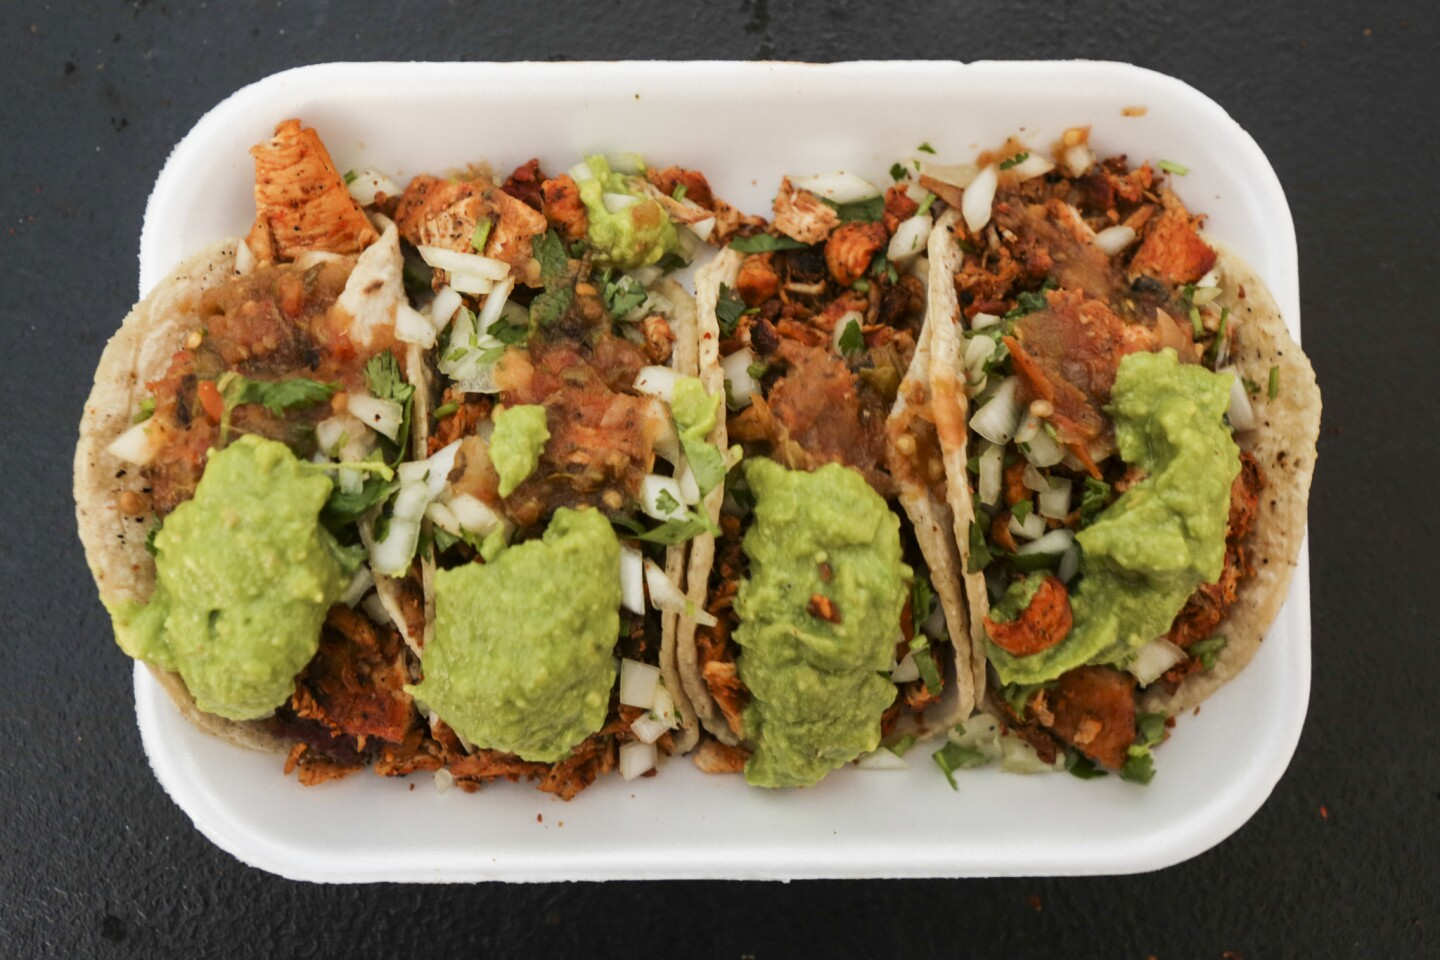 Chicken tacos with cilantro, onions and avocado from Carlos's Tijuana Tacos, a new taco vendor in Whittier.